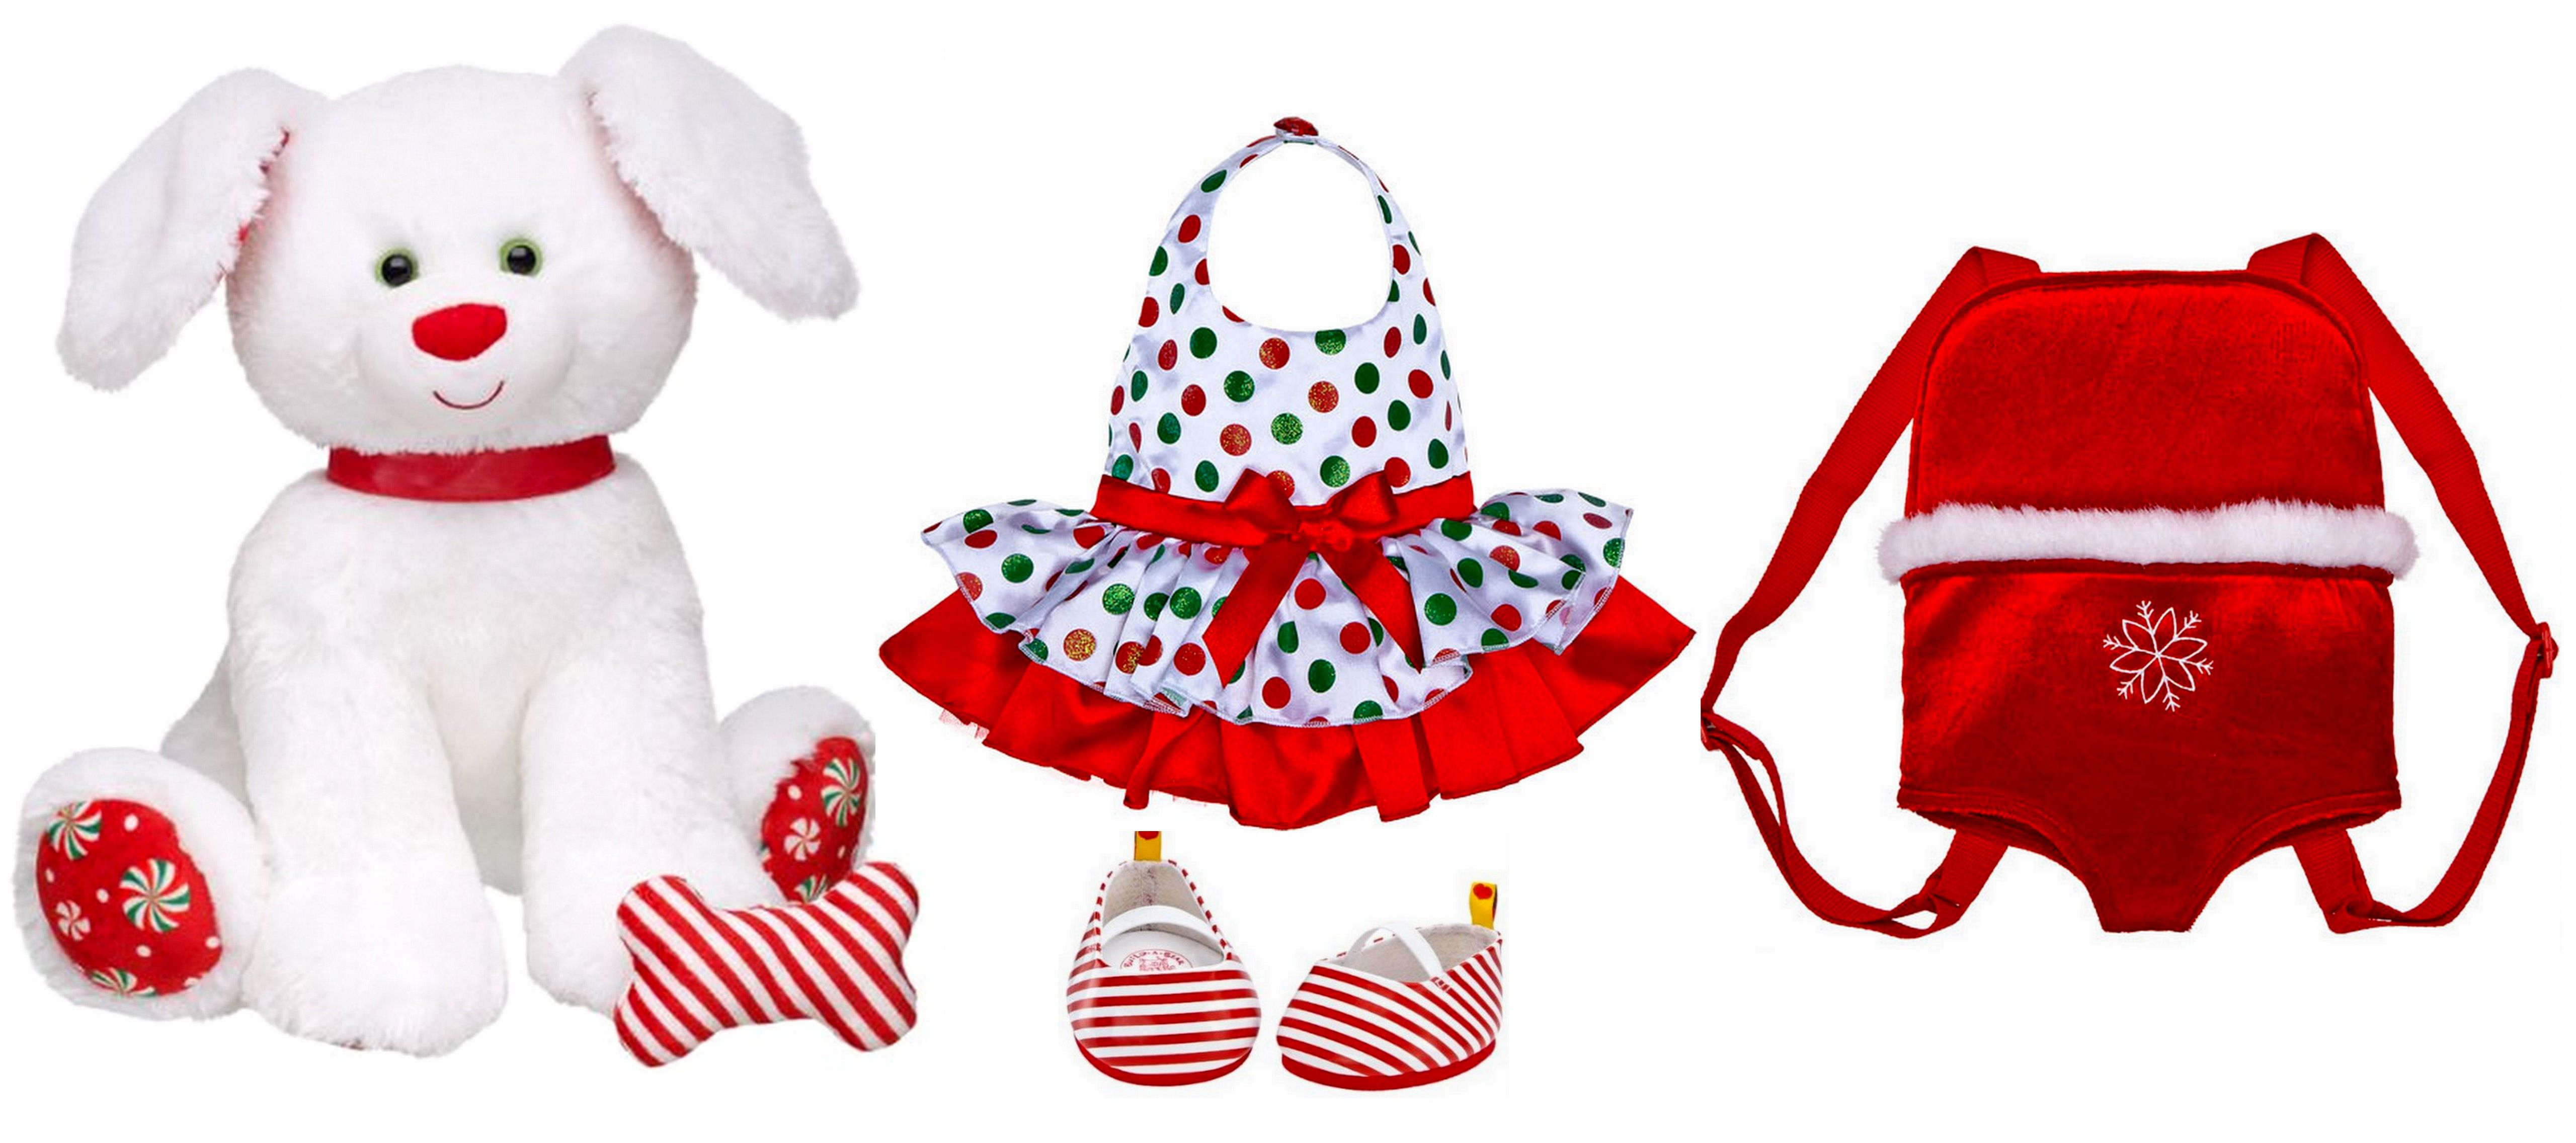 NEW Build a Bear Merry Mint Peppermint Pup Puppy Dog with Polka Dot Holiday Dress Outfit Striped Flats and Red Velvet Carrier Backpack Lot Absolutely Adorable Fantastic Gift Idea In Stock Now at http://www.bonanza.com/listings/New-Build-a-Bear-Merry-Peppermint-Pup-Holiday-Puppy-Dog-with-Outfit-Carrier-Lot/165598561